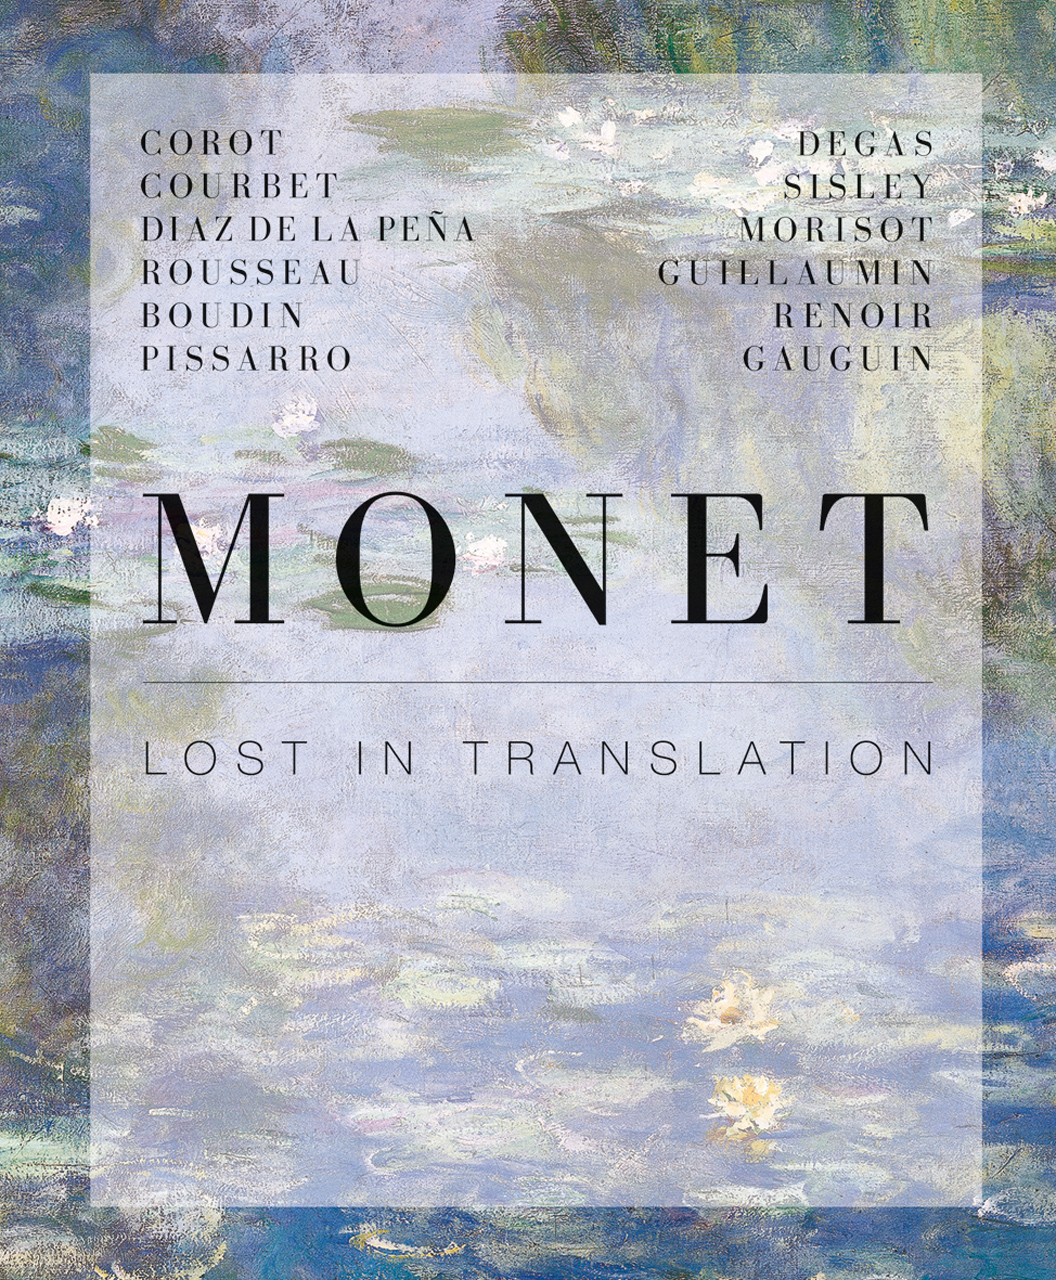 Monet: Lost in Translation - Revisiting Impressionisms